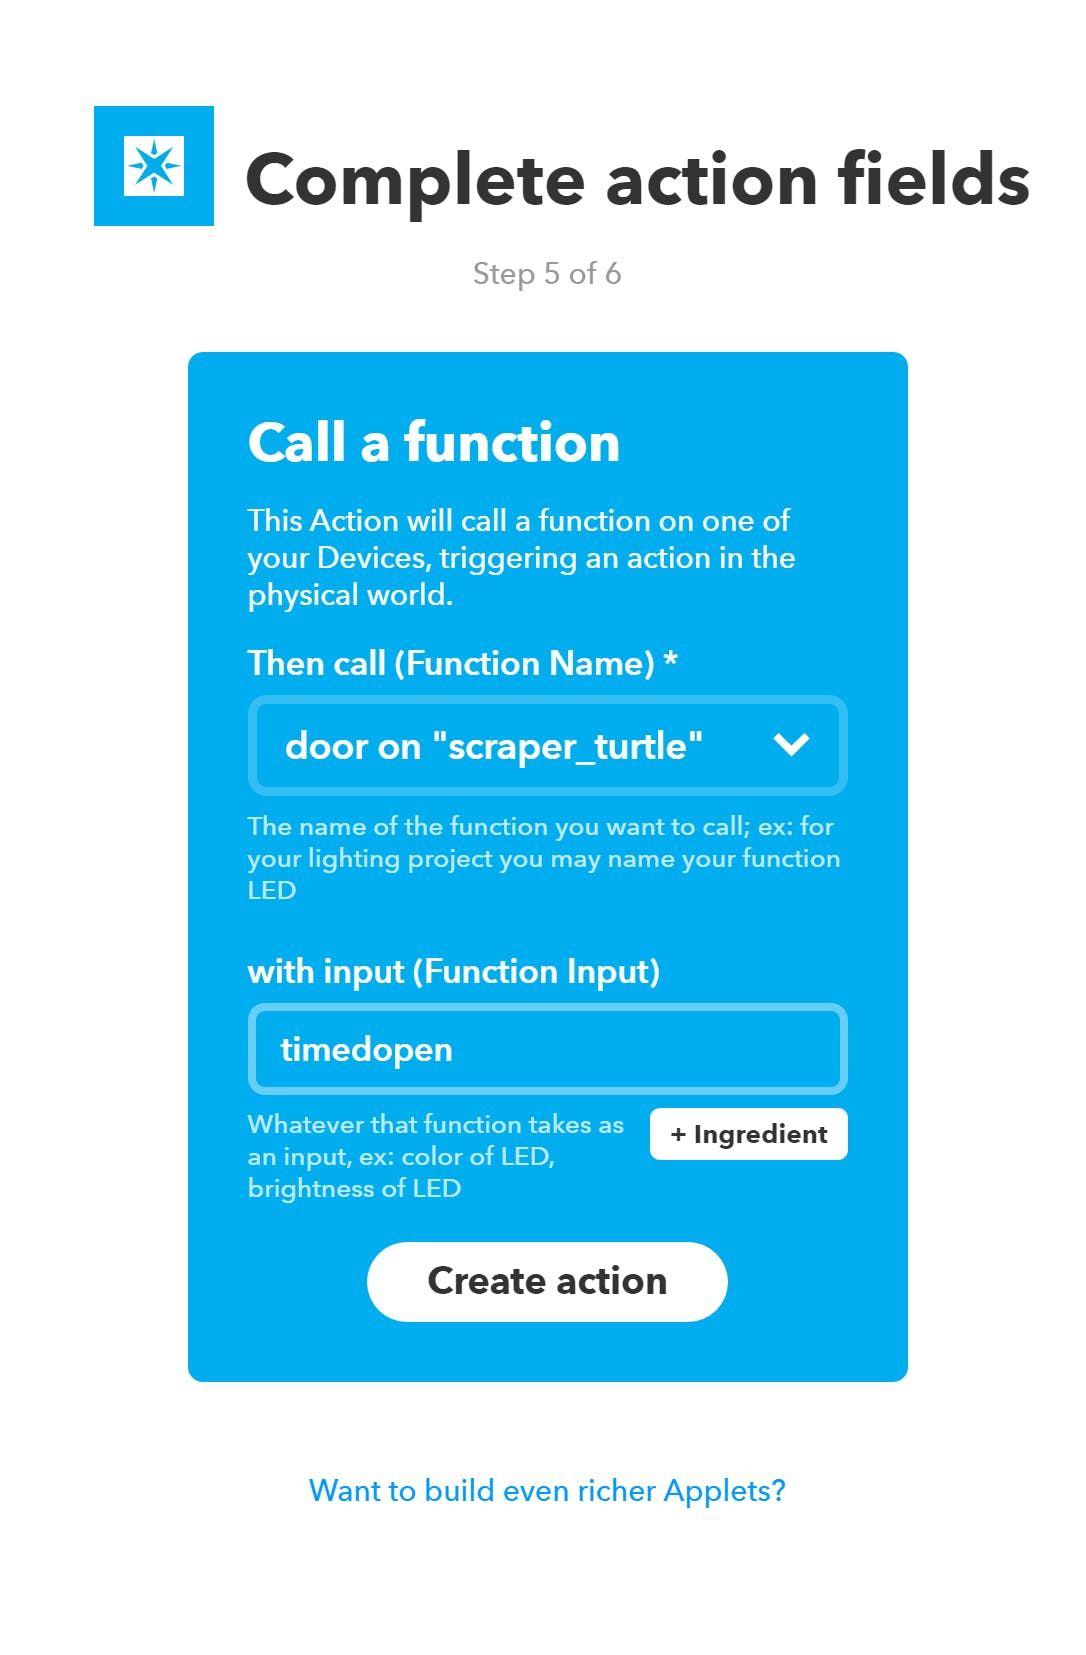 Call the timedopen function that will automatically close after a delay